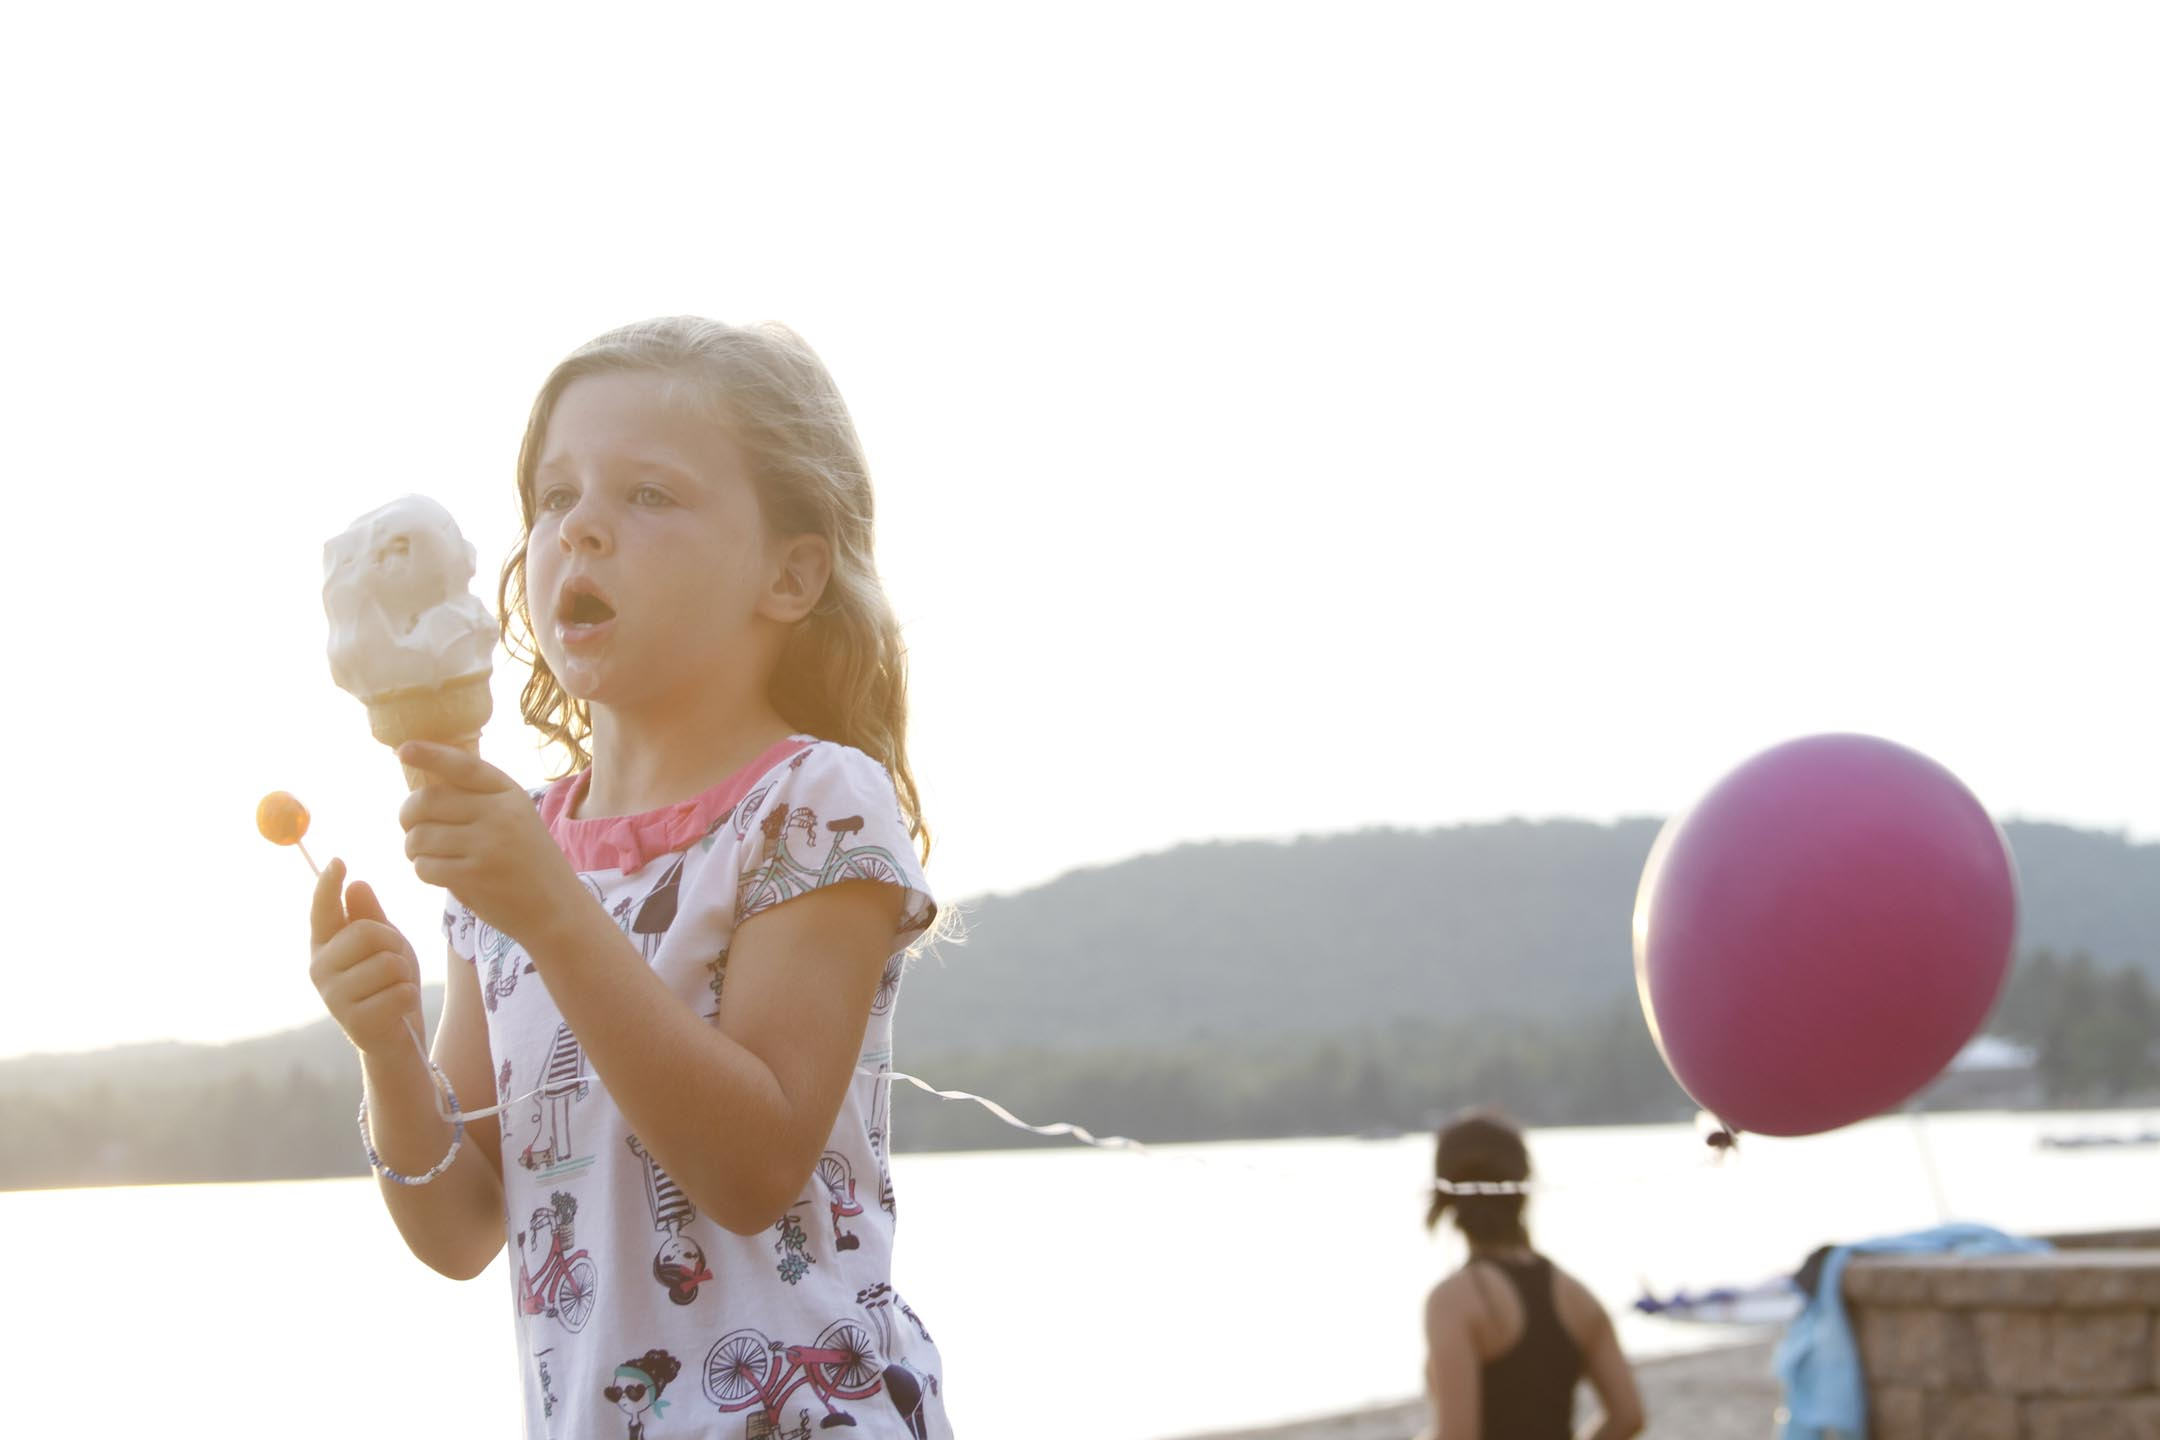 Balloon and IceCream